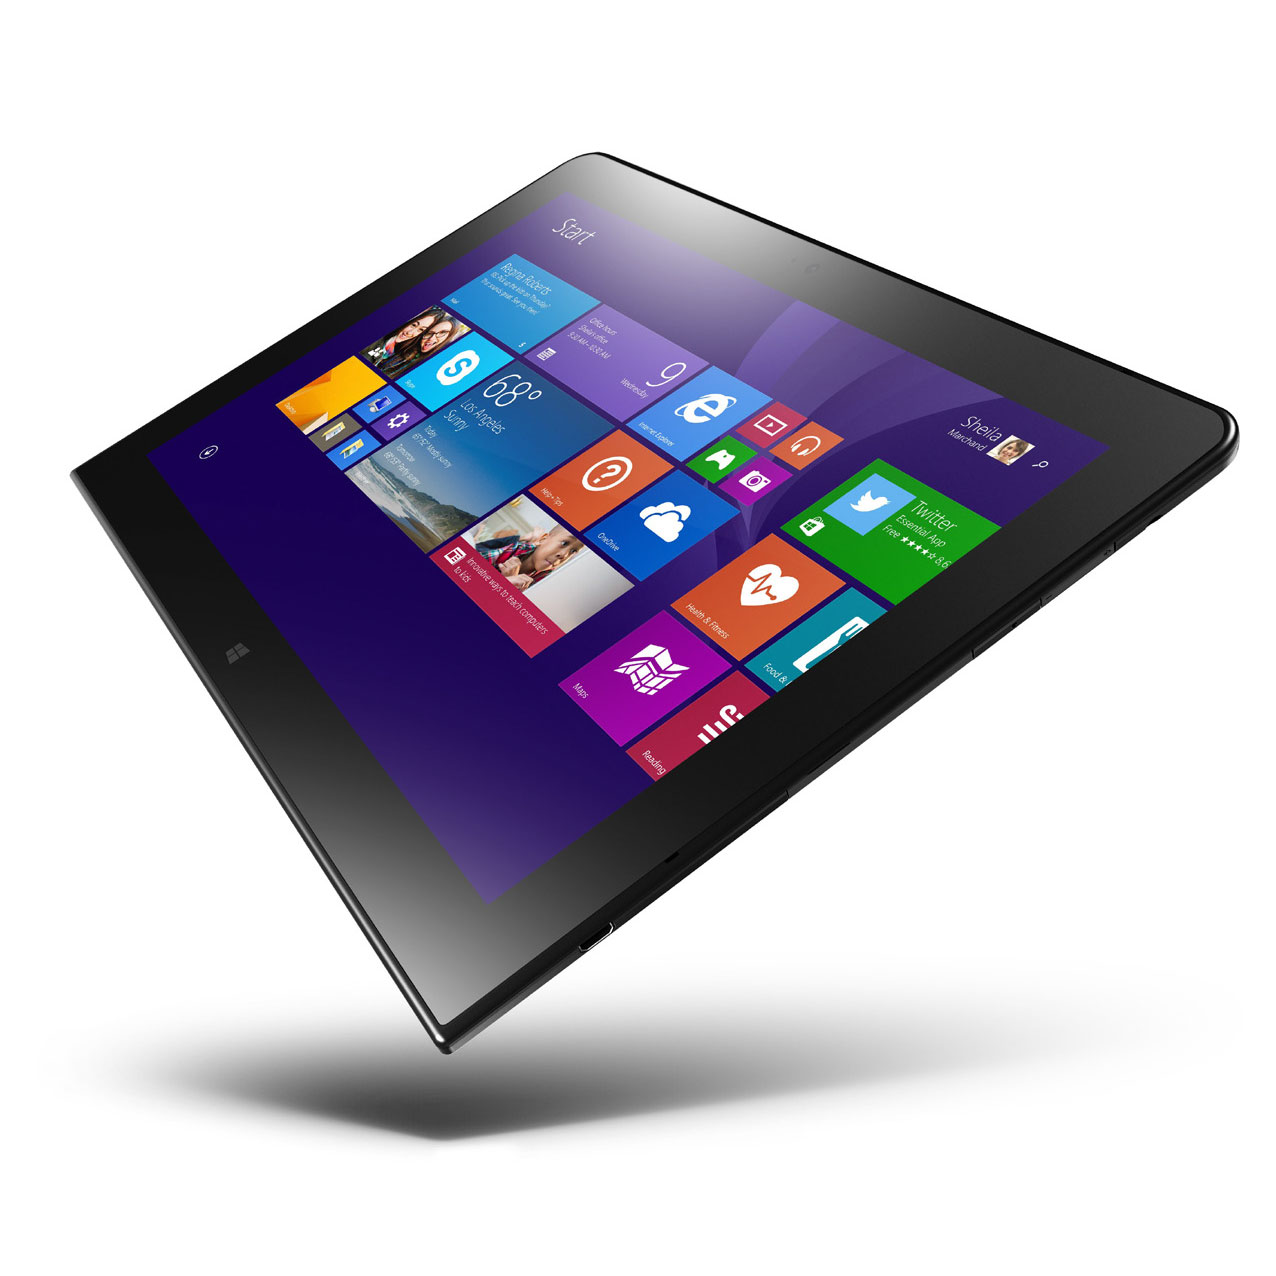 lenovo thinkpad 10 20c10024fr tablette tactile lenovo sur. Black Bedroom Furniture Sets. Home Design Ideas